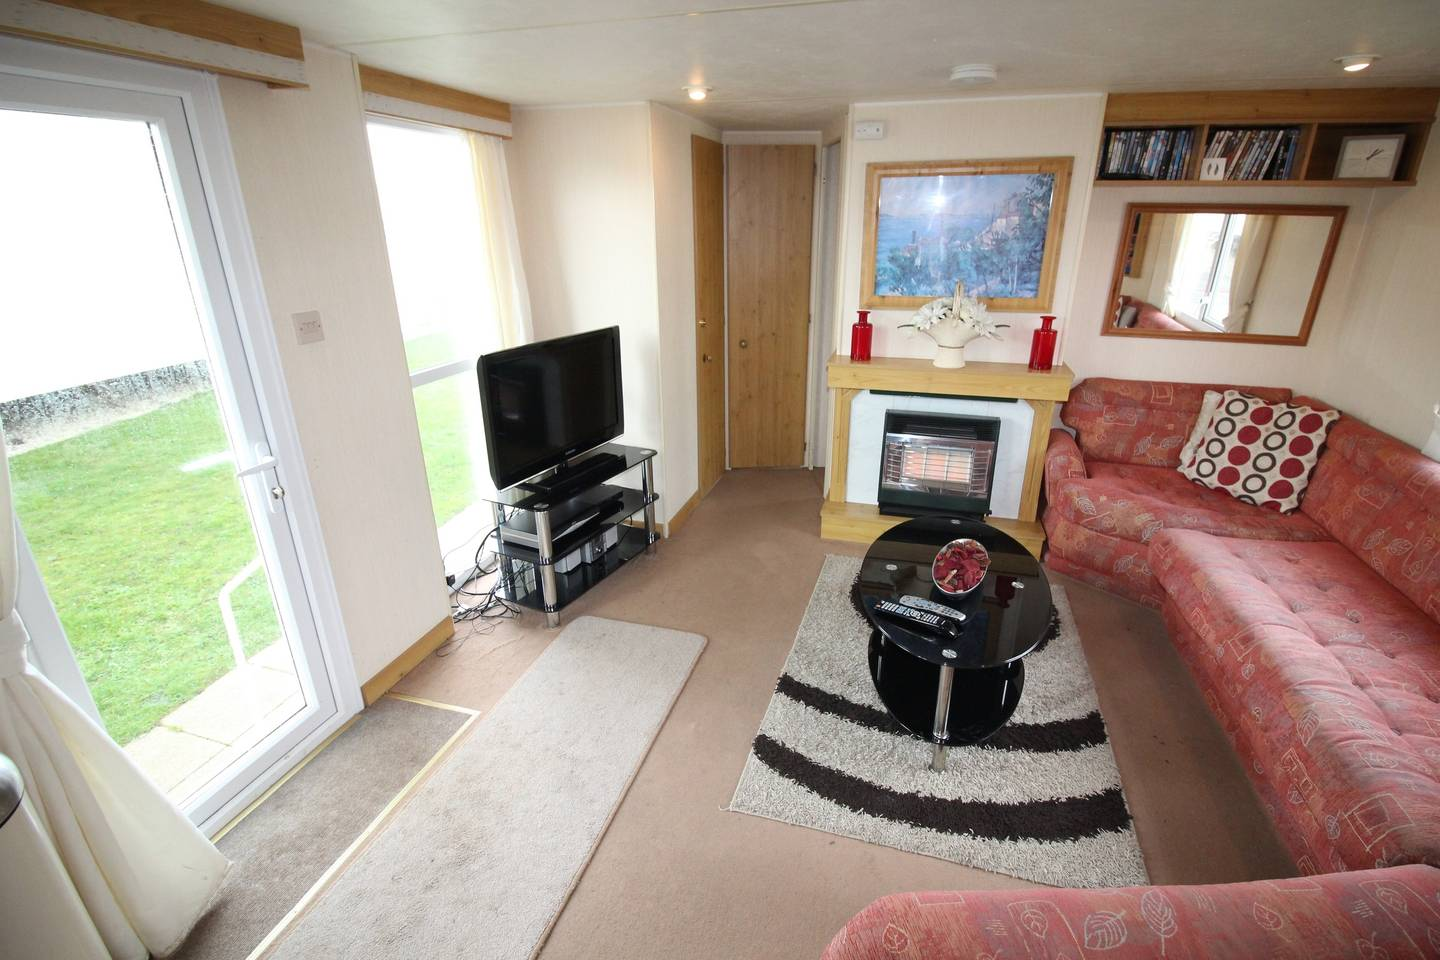 Apartment 3 Bed Caravan  Reighton Sands  Filey photo 18766353